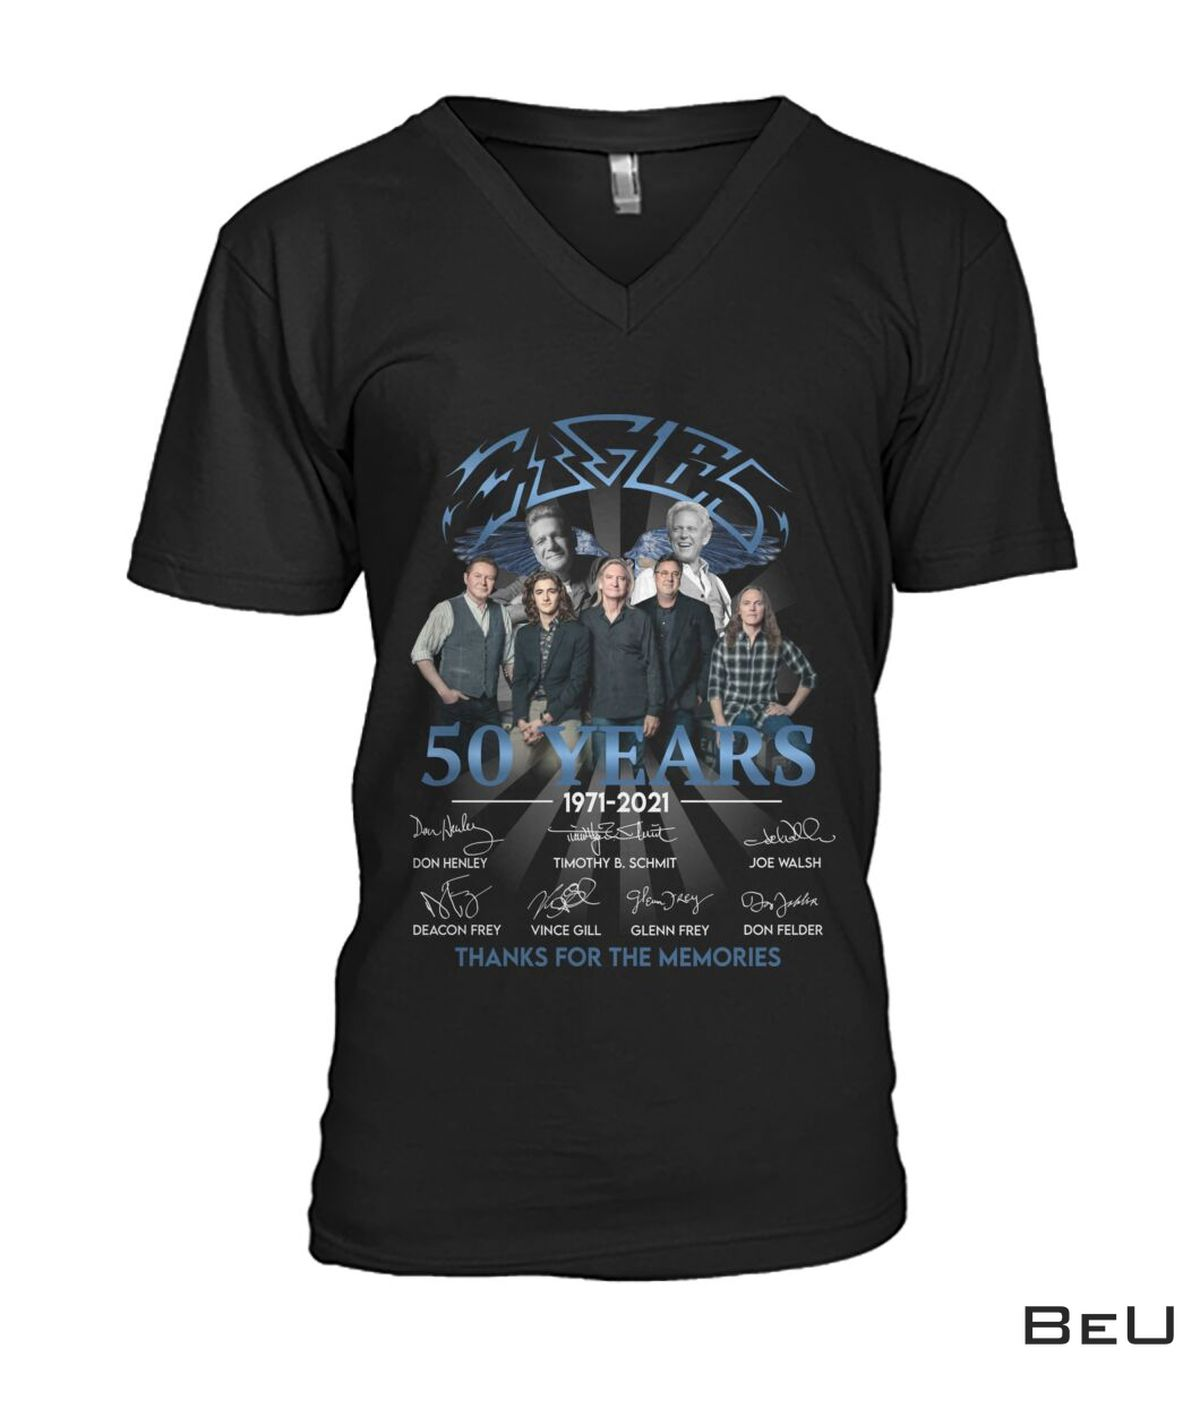 Eagles Rock Band 50 Years Thank You For The Memories Shirt c